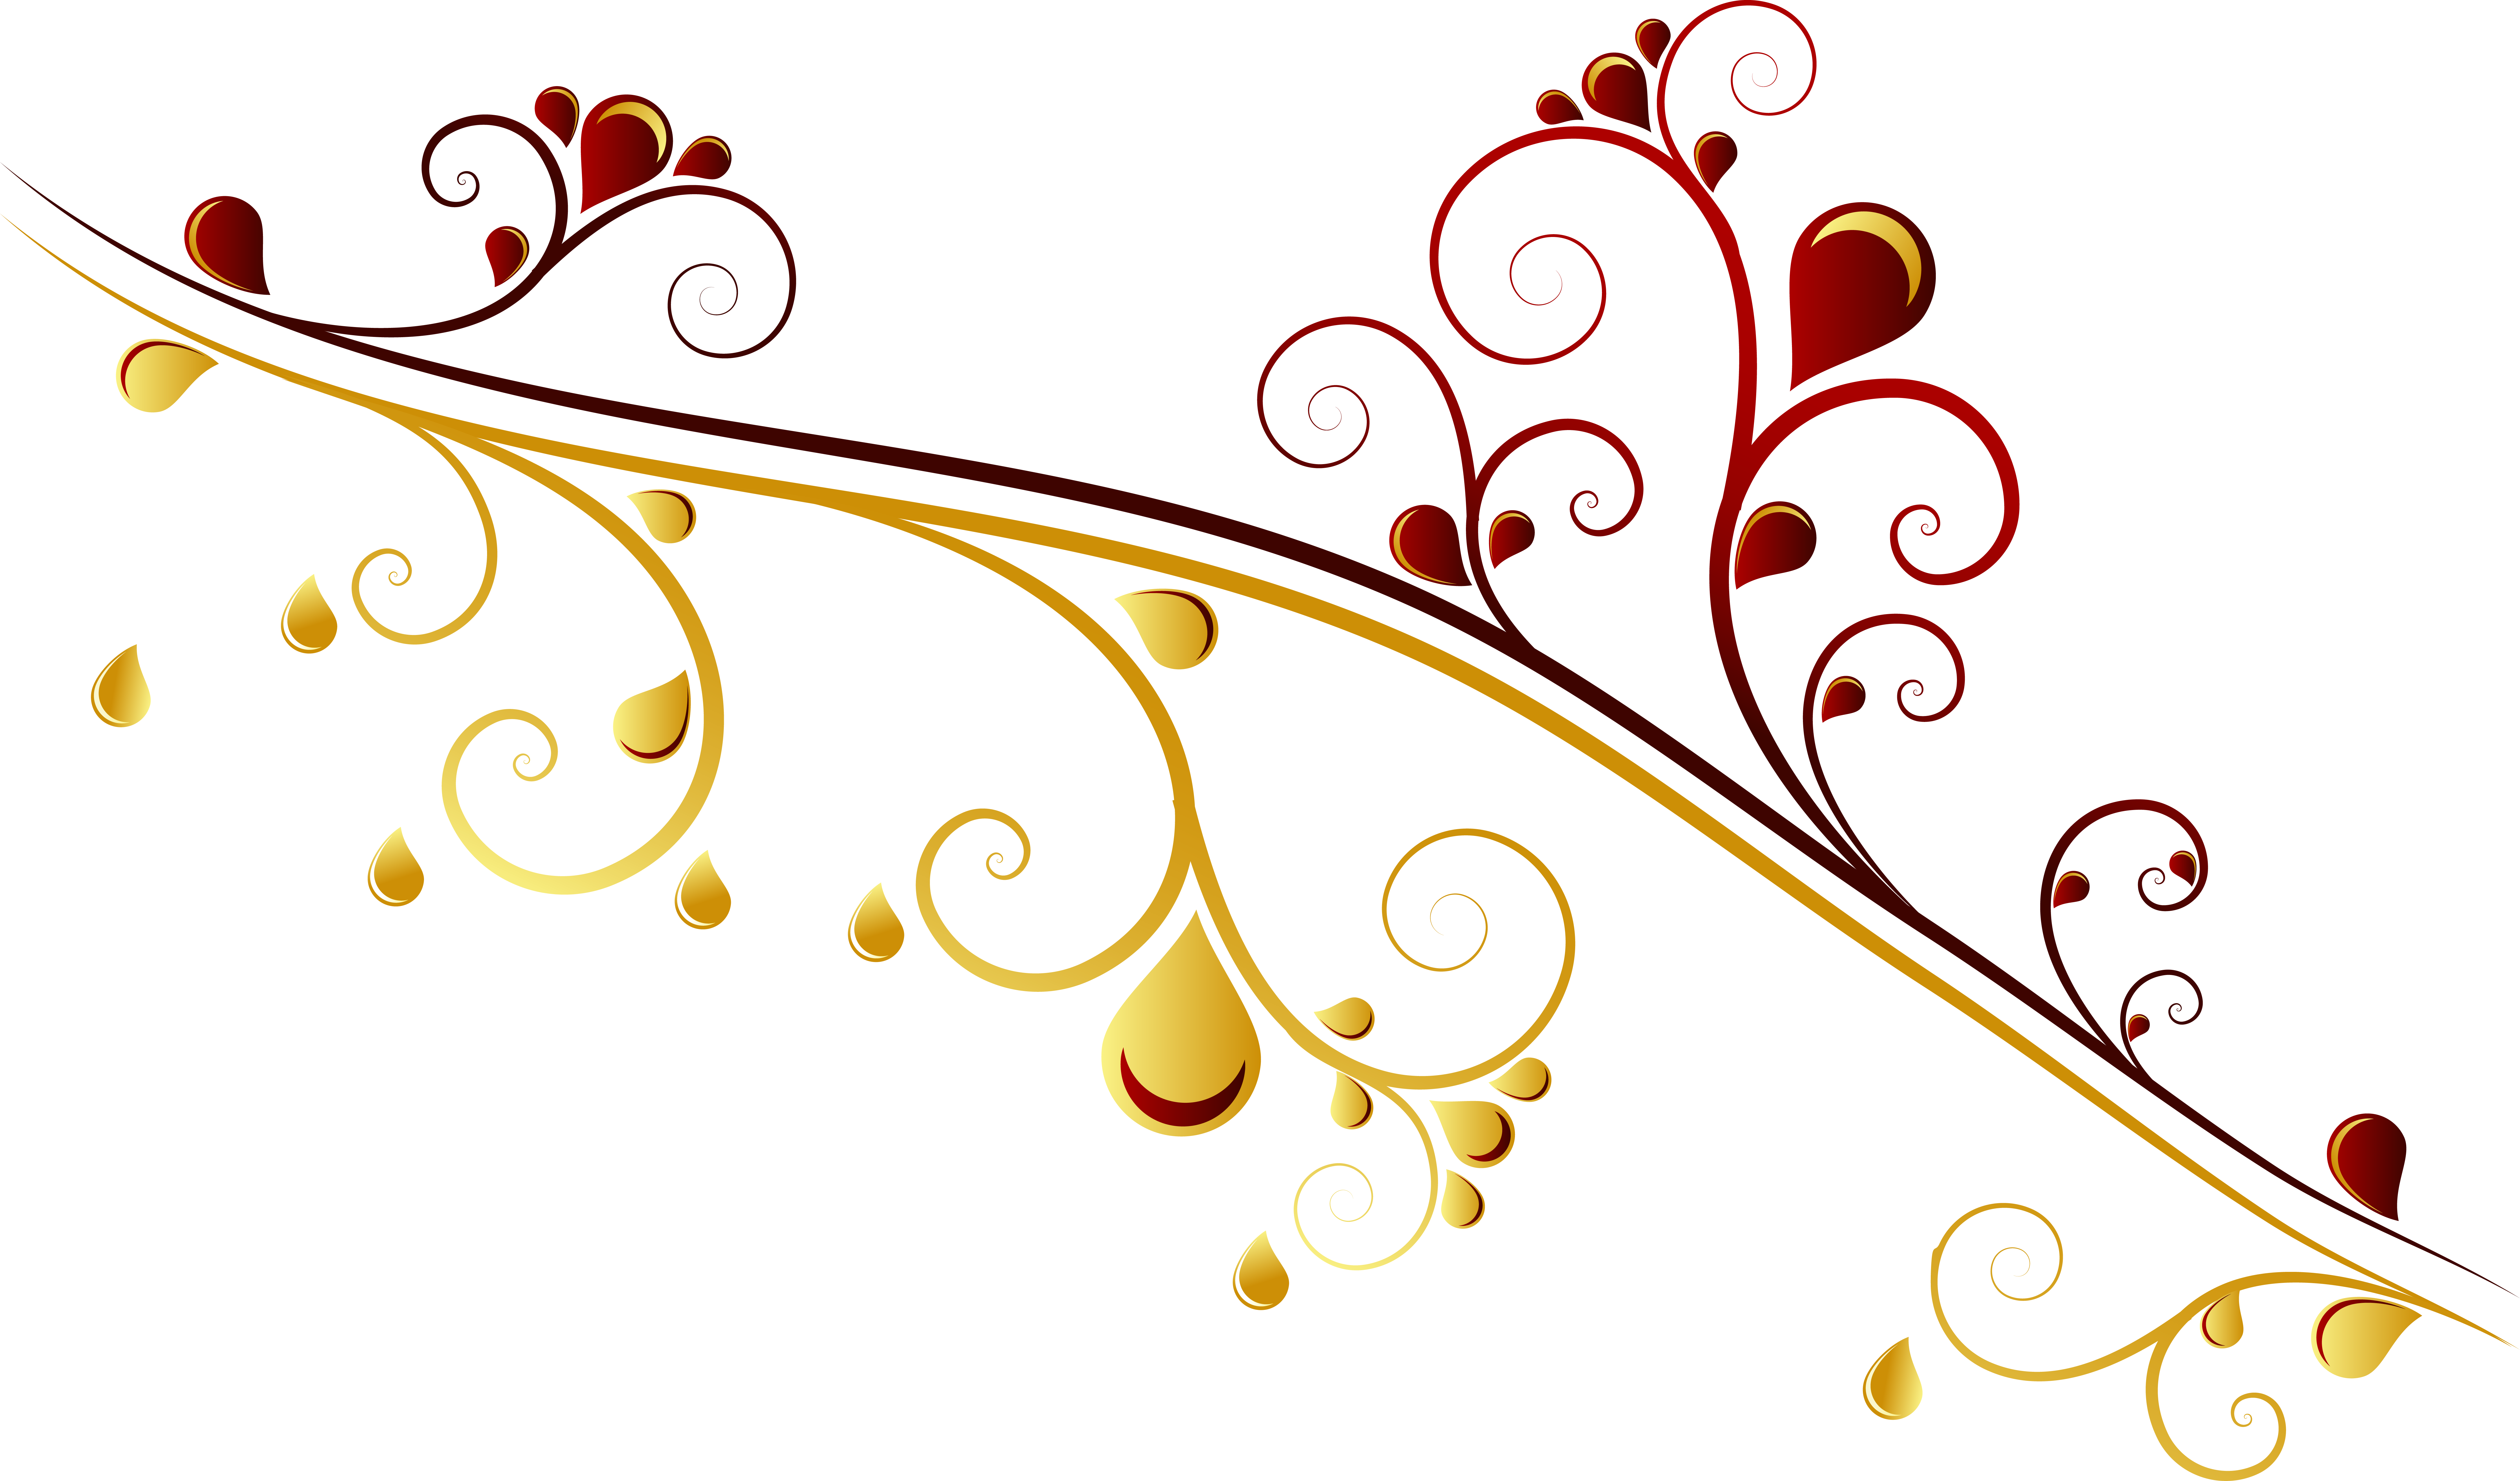 Ornament vector png. Gold euclidean red flower